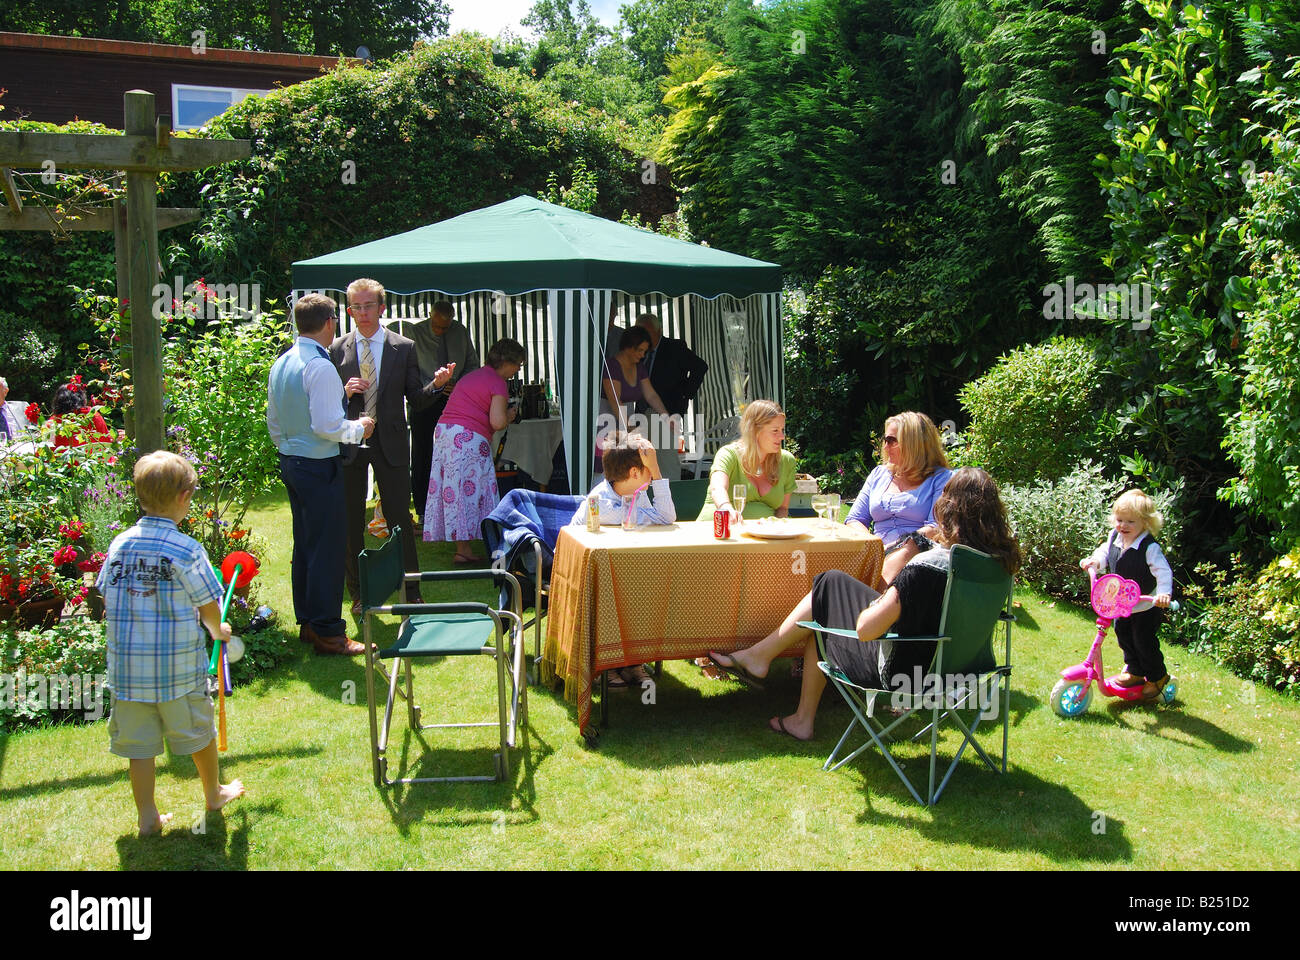 family garden party ascot berkshire england united kingdom